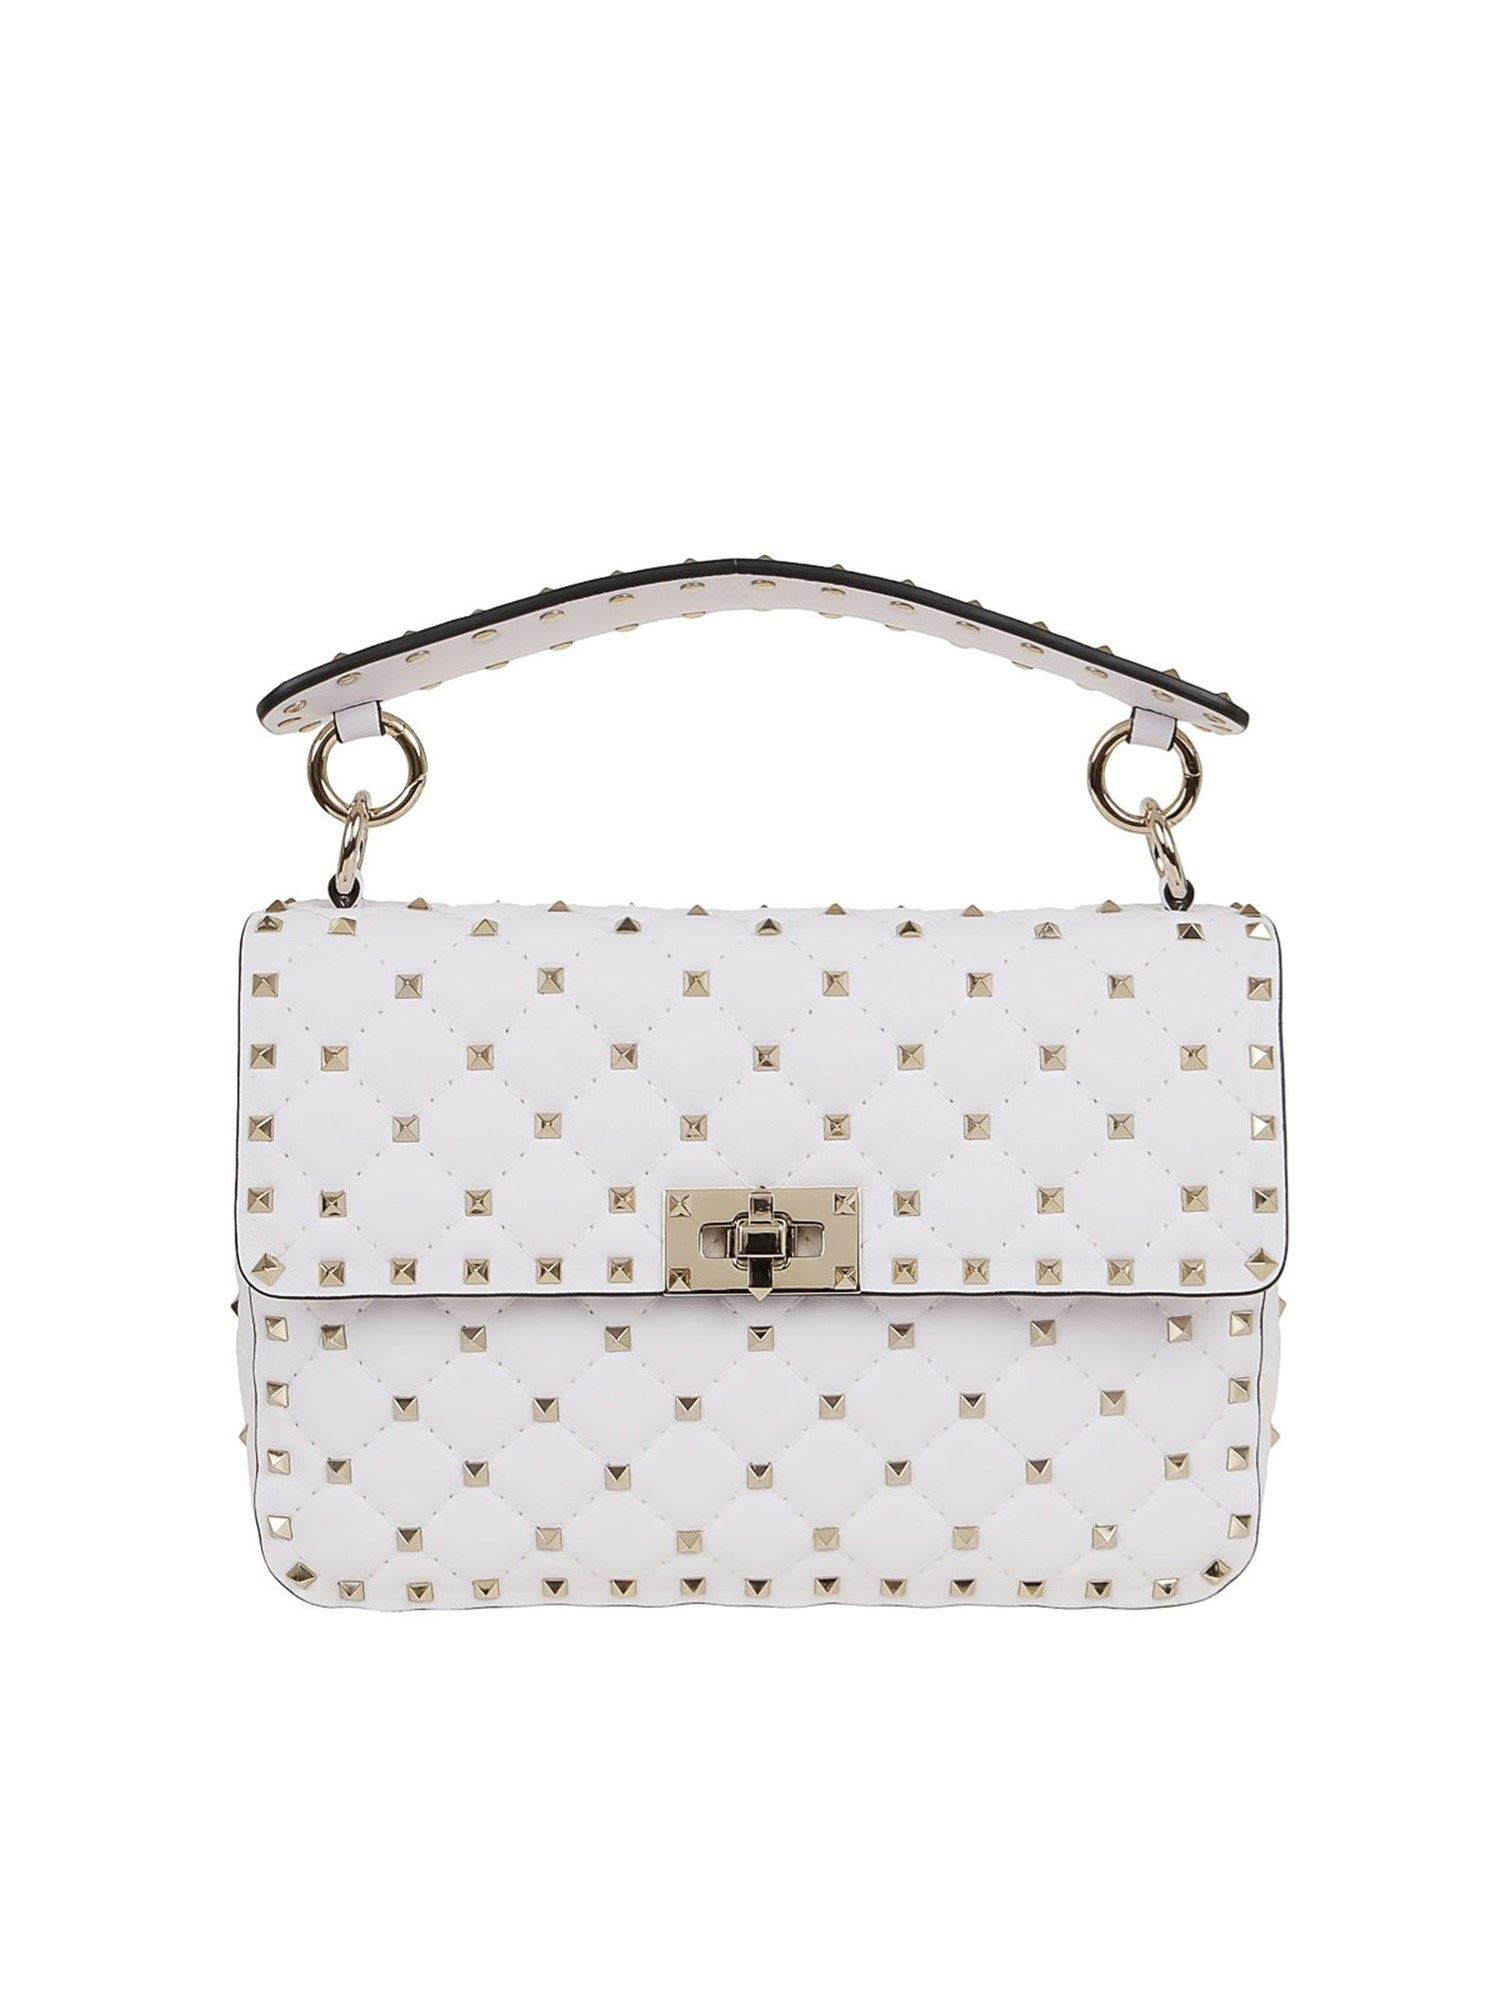 VALENTINO SPIKE MEDIUM BAG IN WHITE